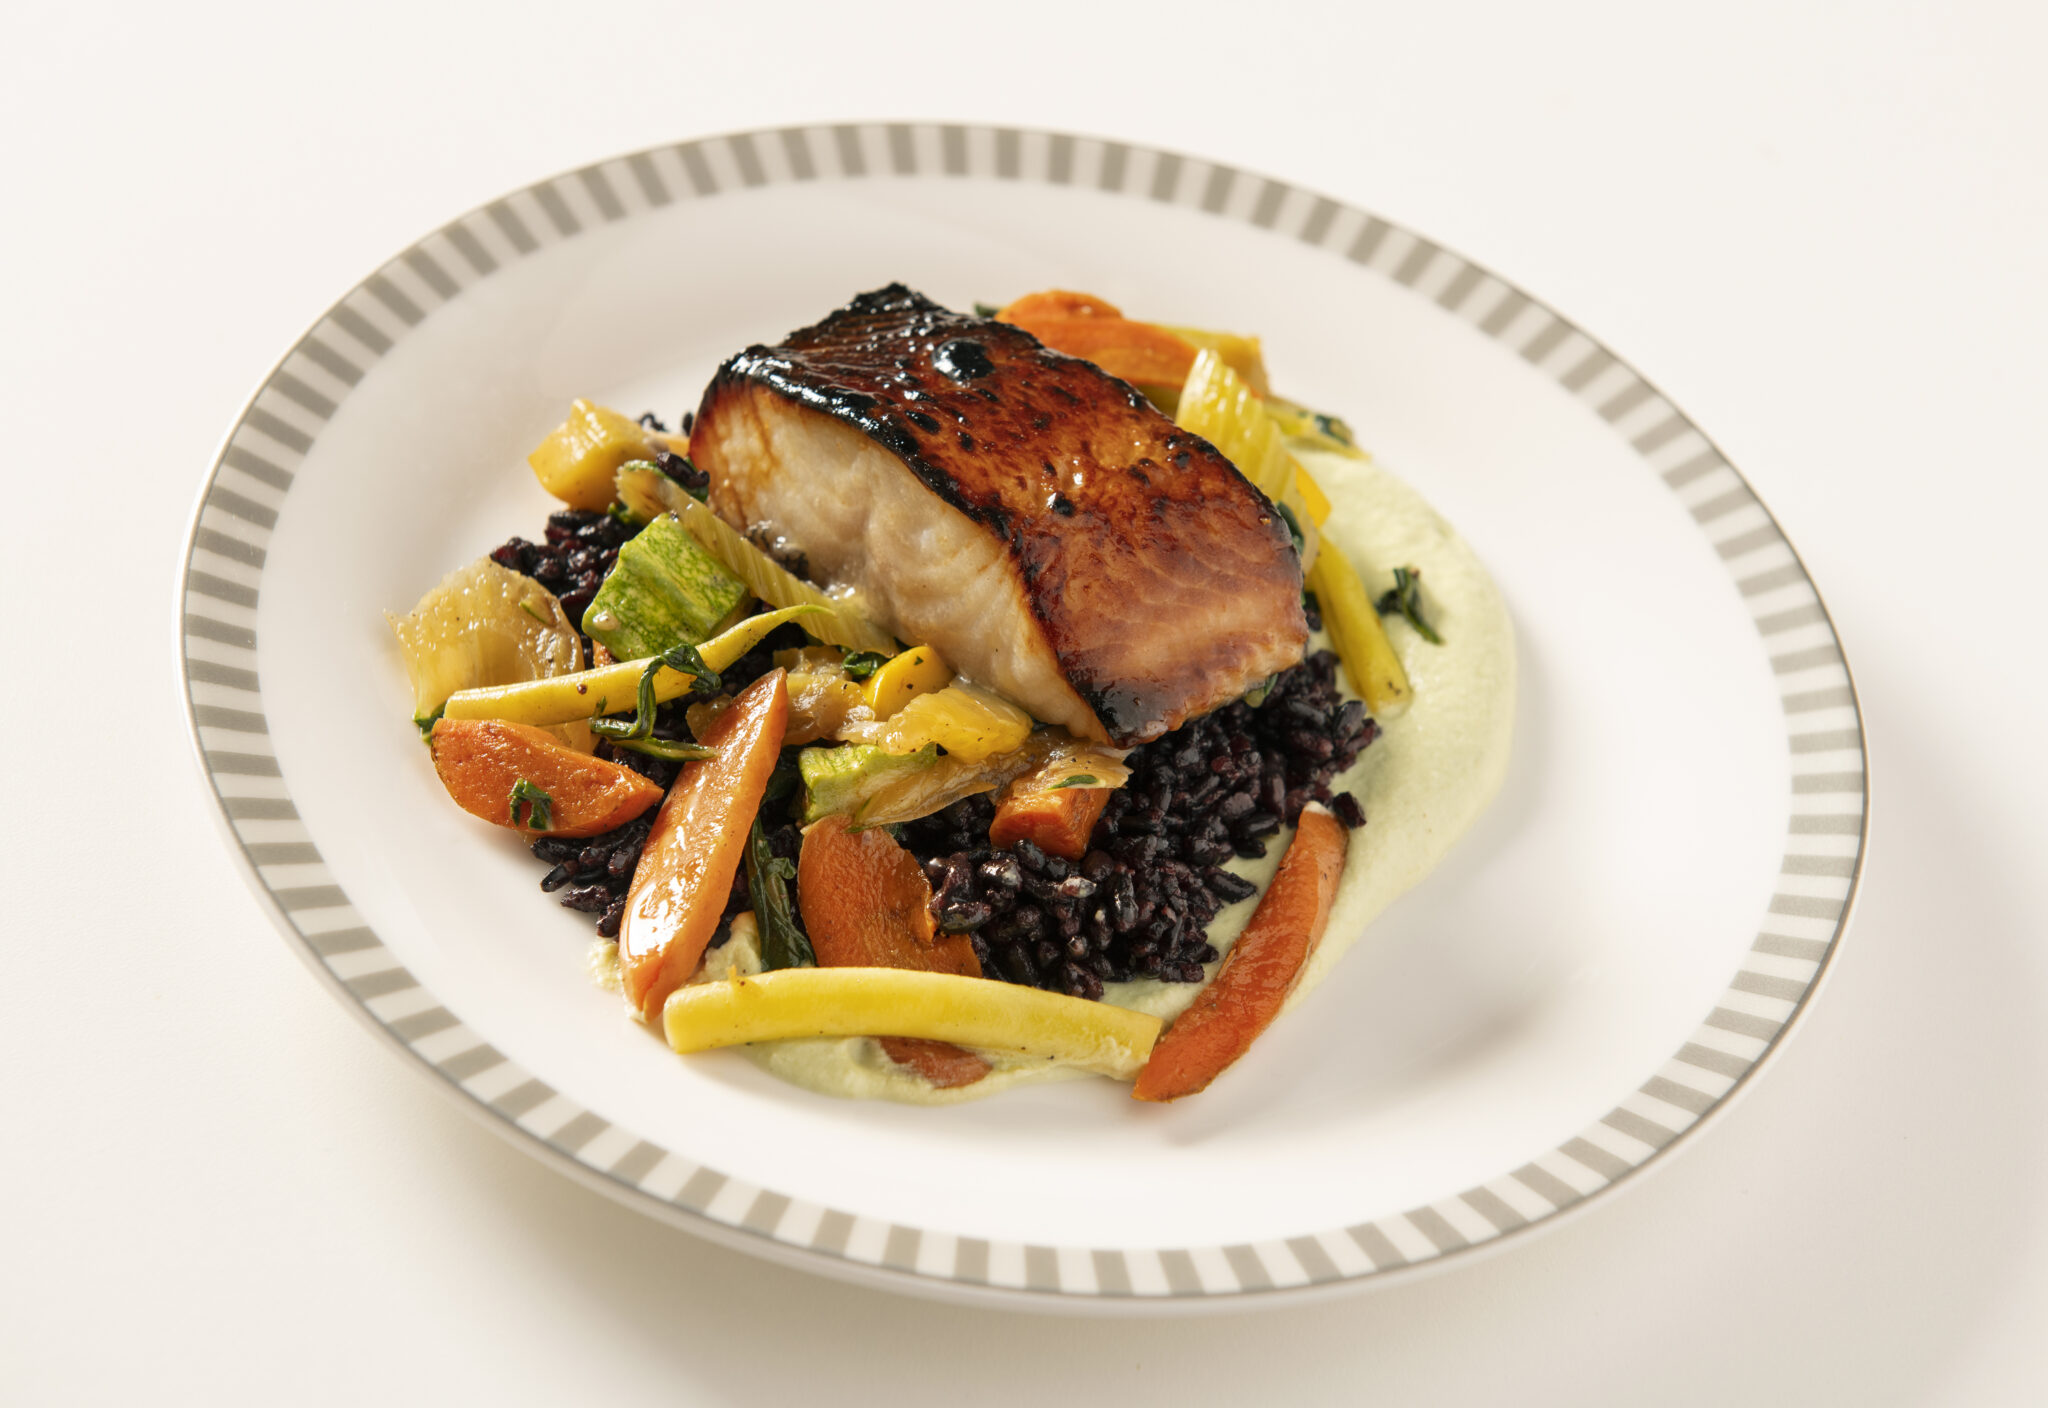 A delectable looking salmon dish, with the filet sitting atop a veggie medley